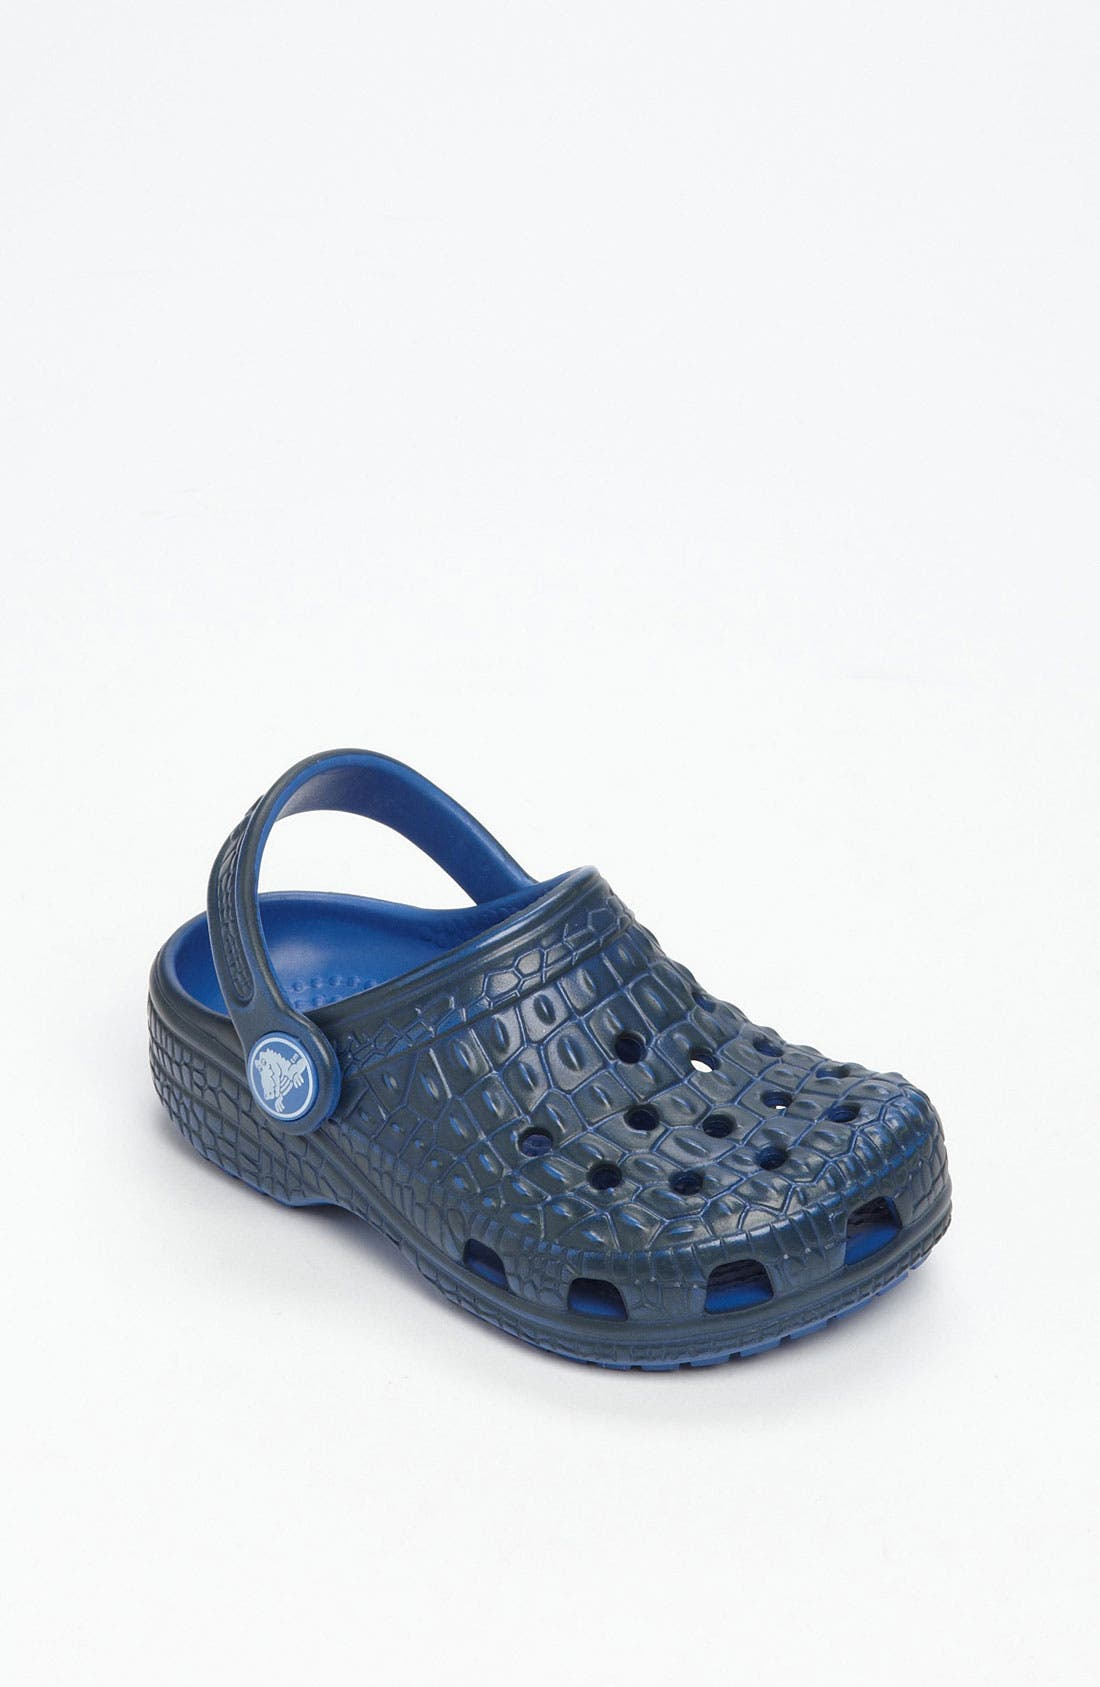 Main Image - CROCS™ 'Crocskin' Slip-On (Walker, Toddler & Little Kid)